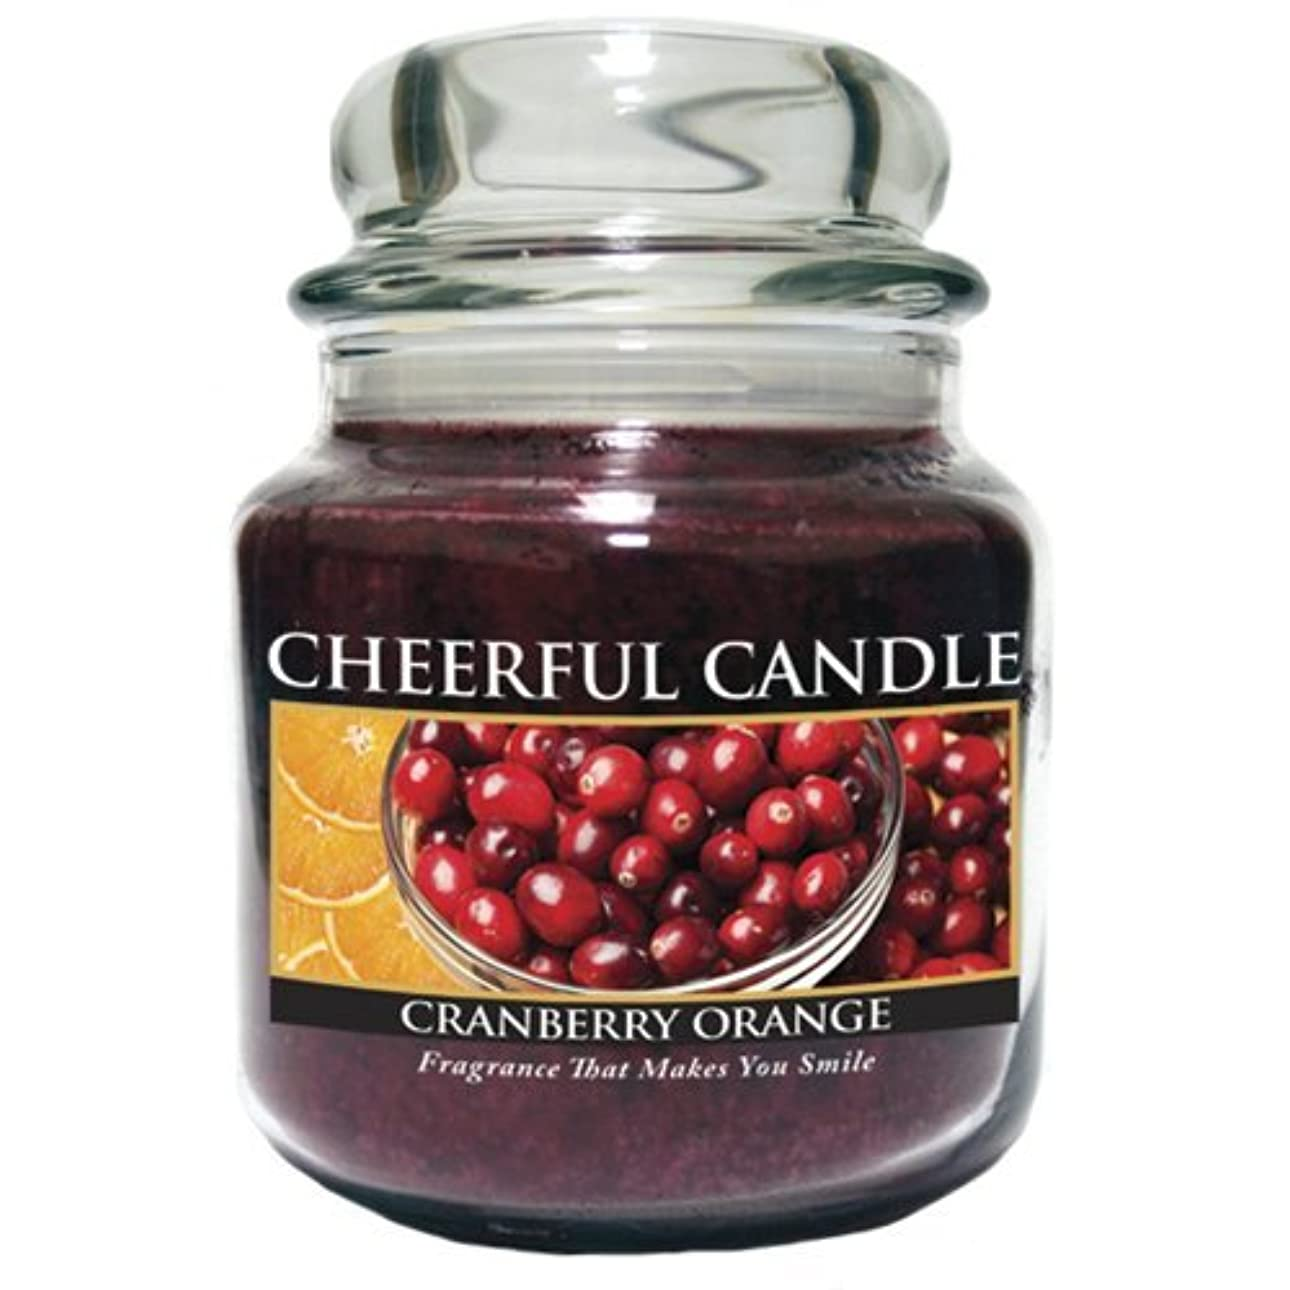 オーケストラコースディーラーA Cheerful Giver Cranberry Orange Jar Candle, 24-Ounce by Cheerful Giver [並行輸入品]